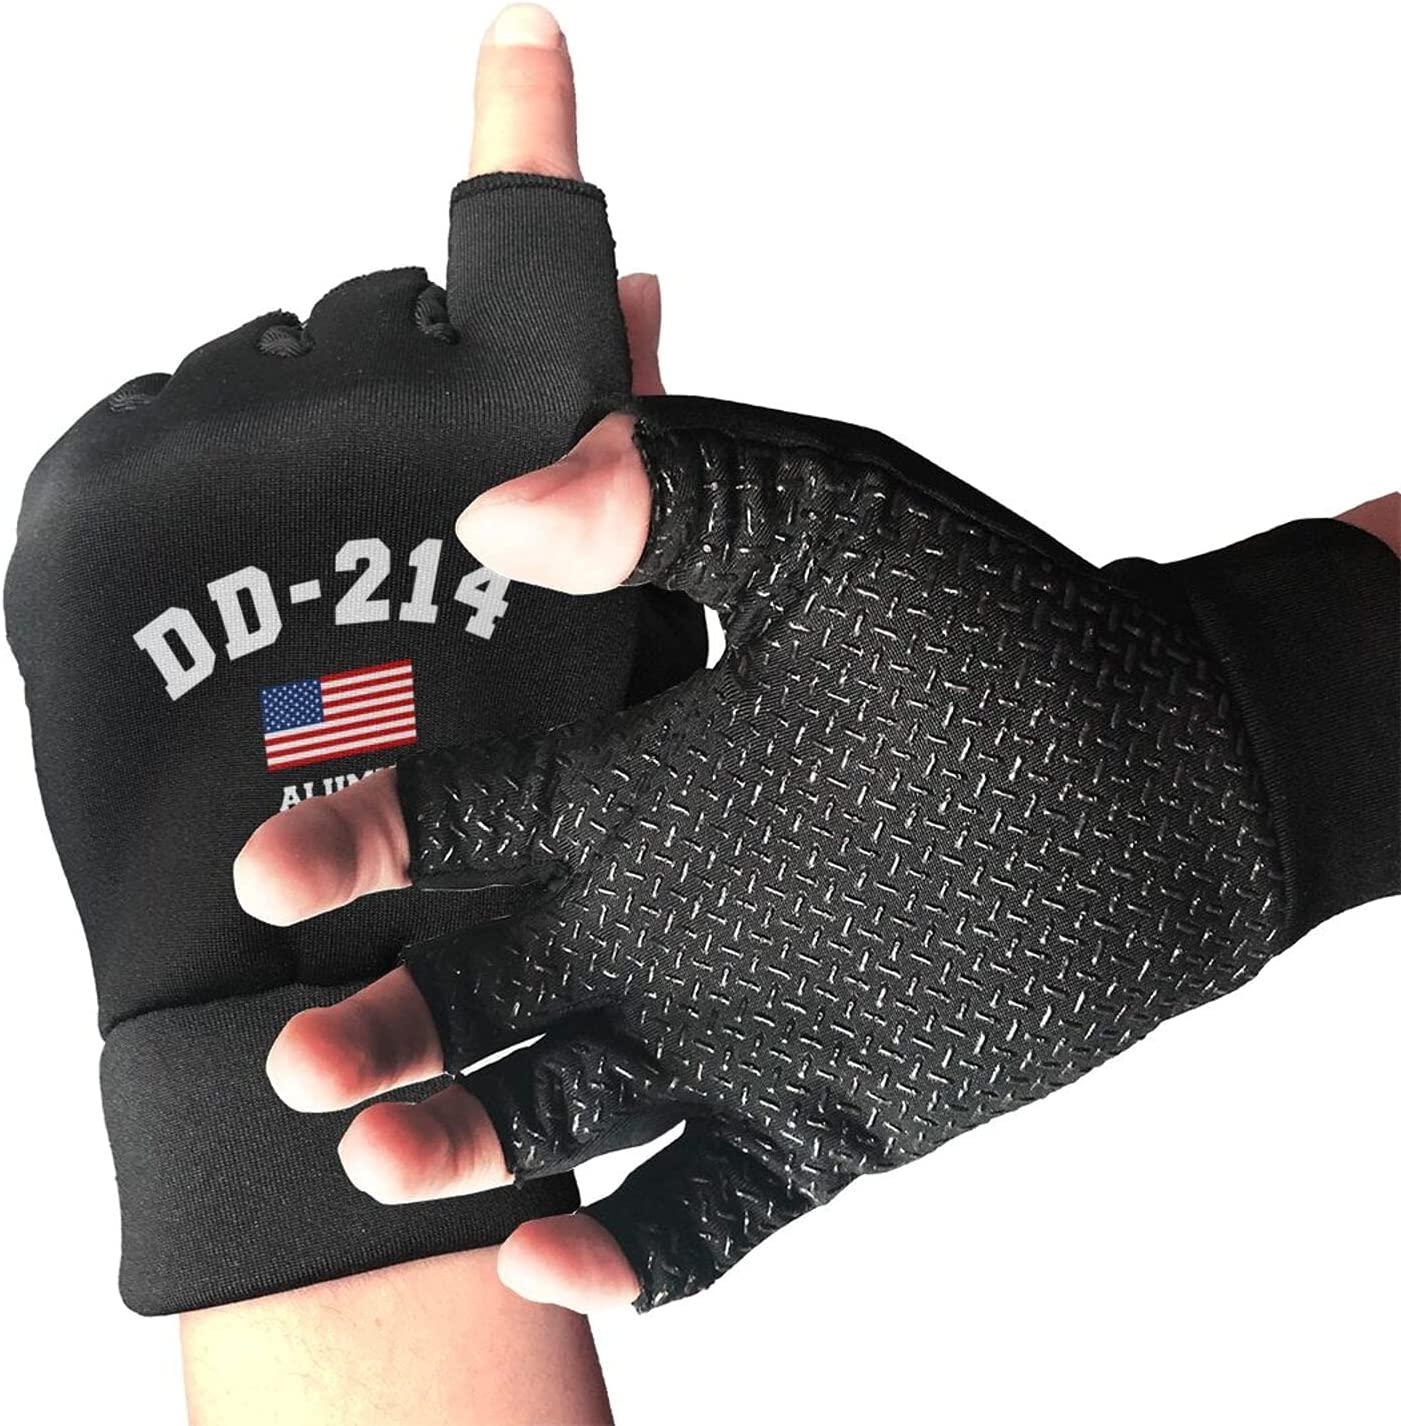 Dd-214 Alumni American Flag Sports Exercise Weekly excellence update for Suitable Gloves